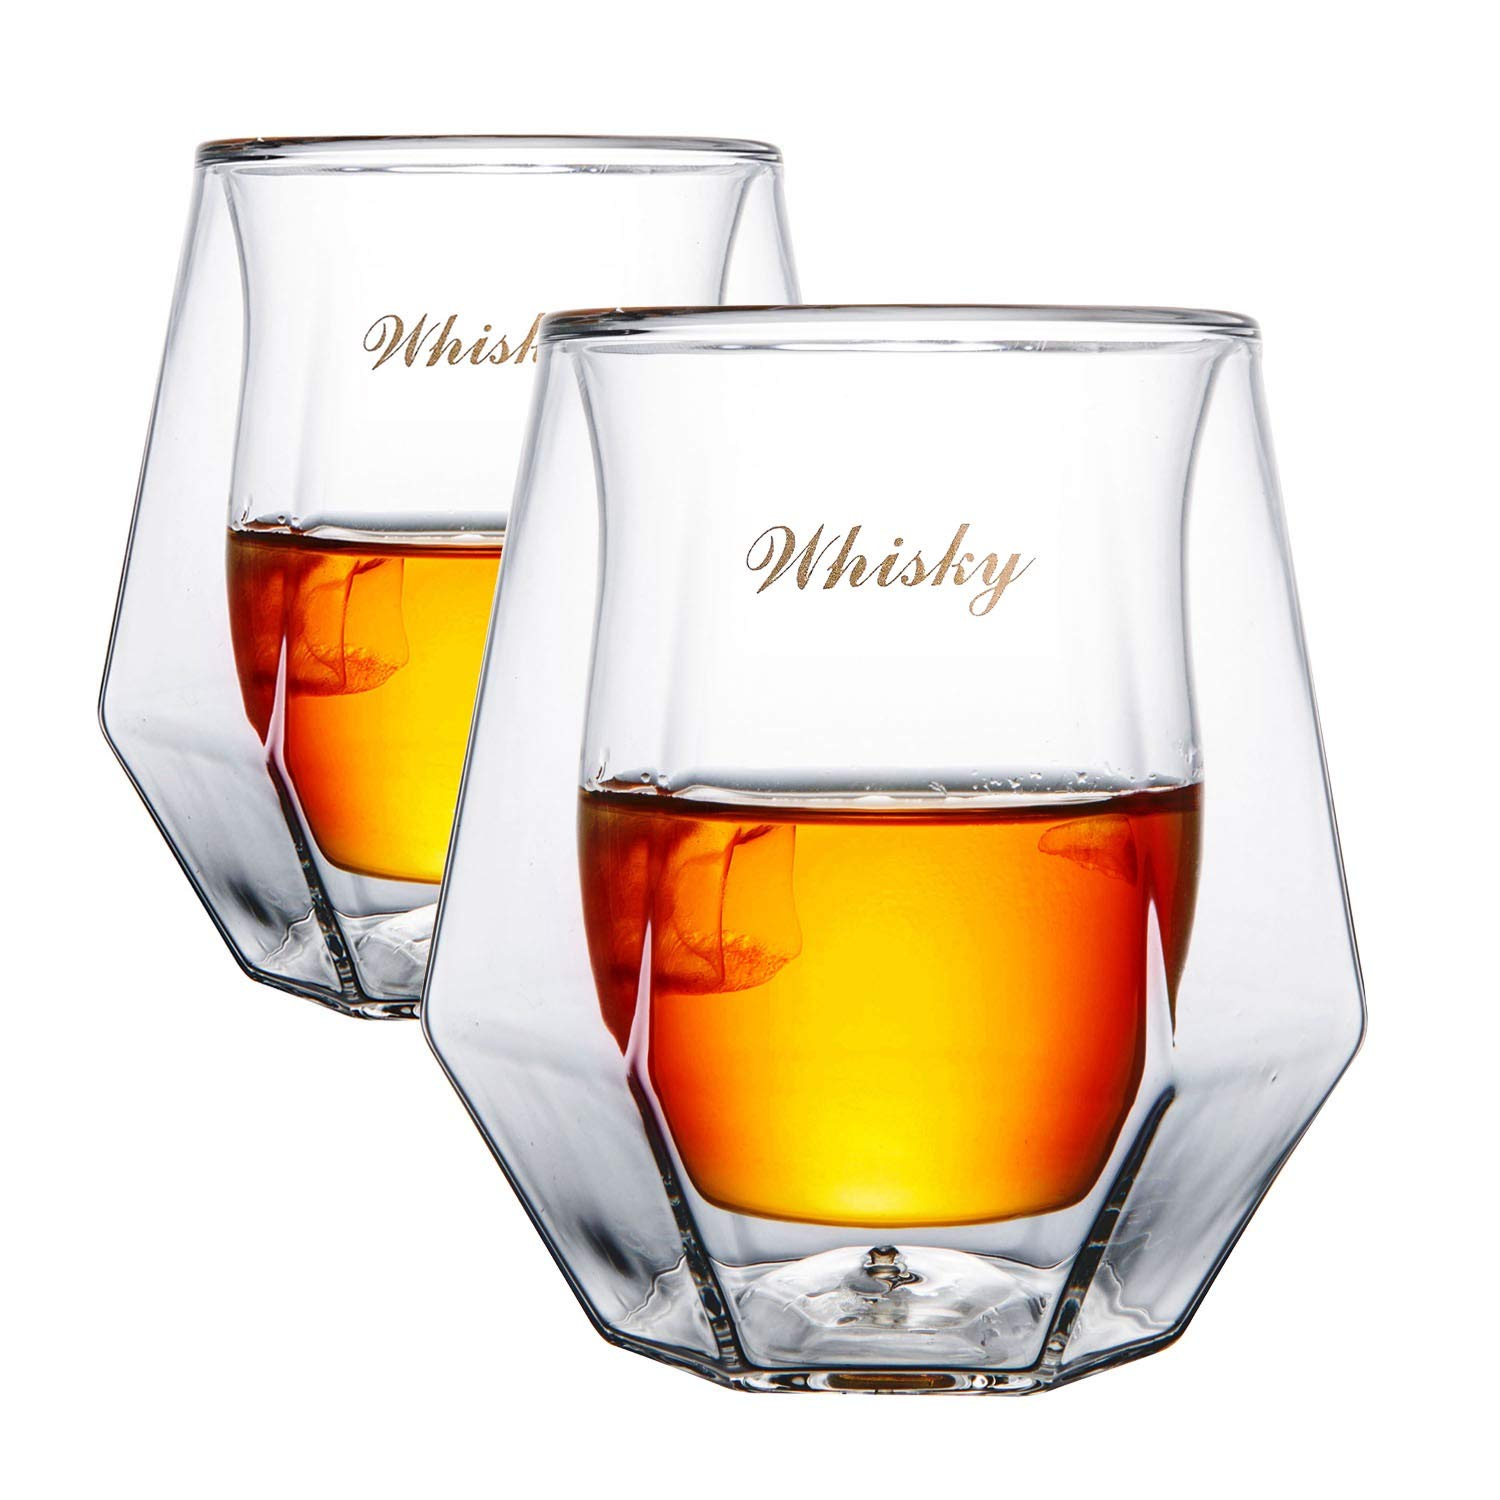 Gootus Whiskey Glasses Set of 2 - Hand Blown Double Walled Glass with Premium Gift Box - Perfect for Scotch, Bourbon and Old Fashioned Cocktails by Gootus